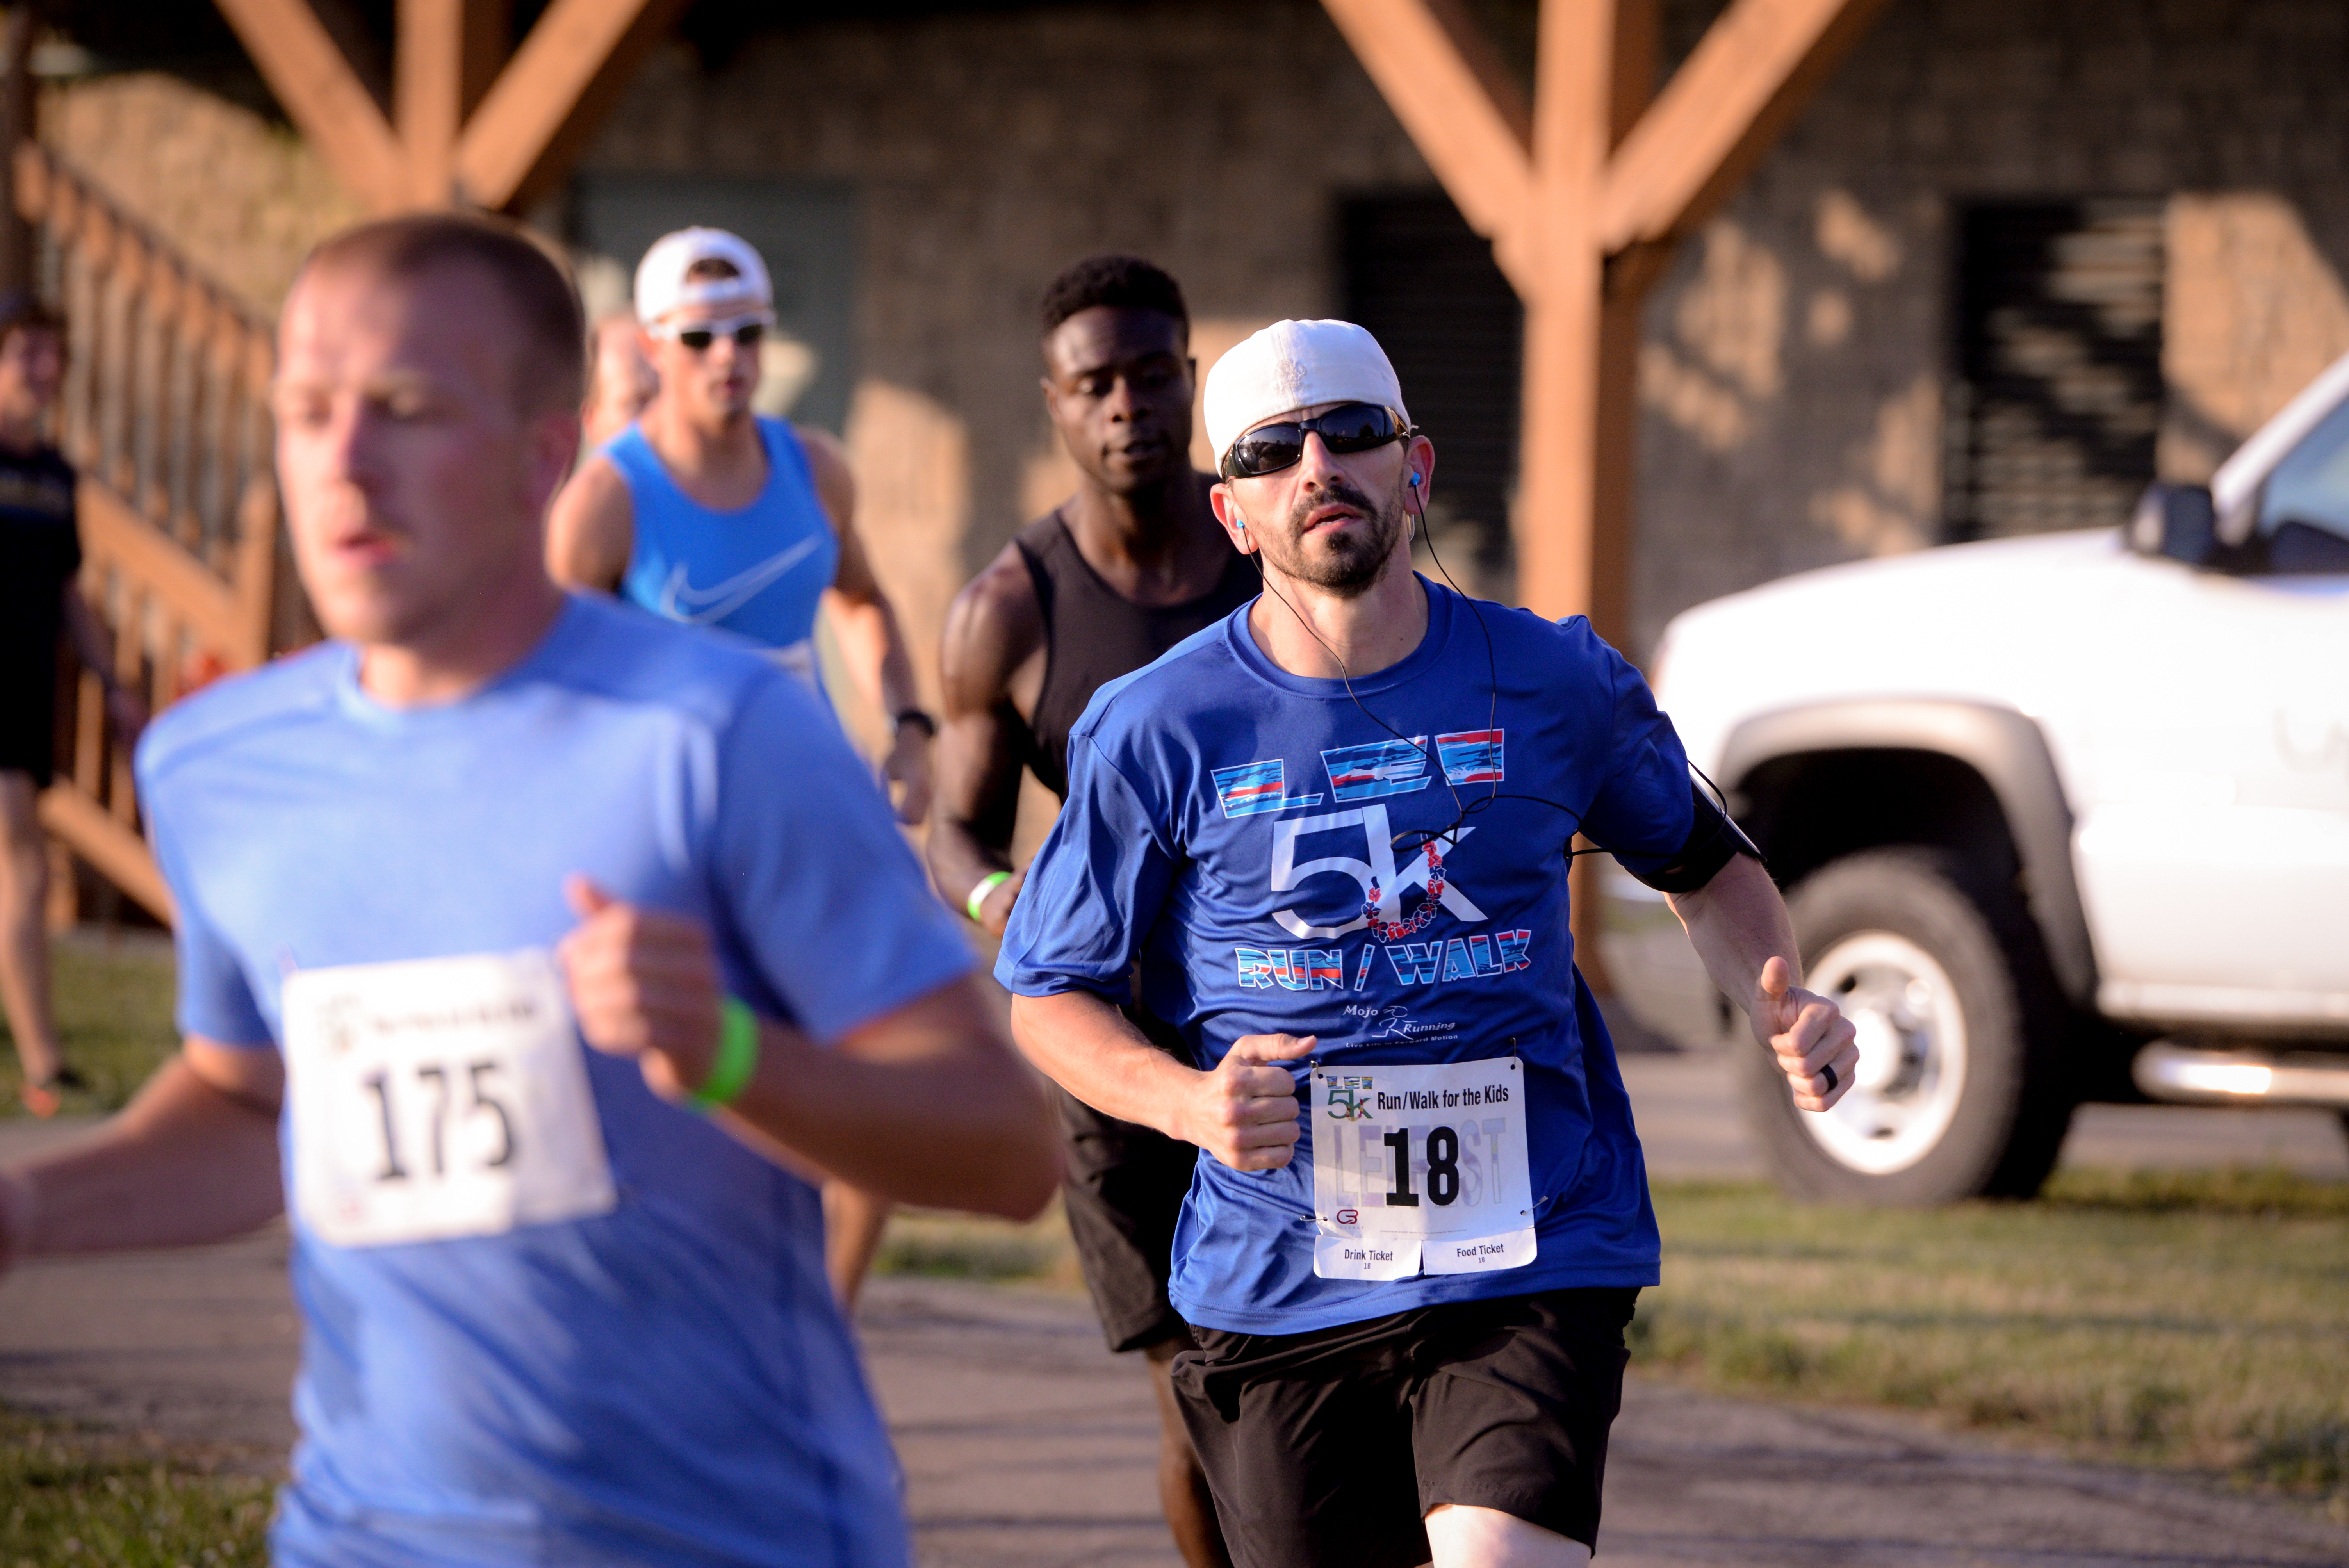 2016lei5k-color-155